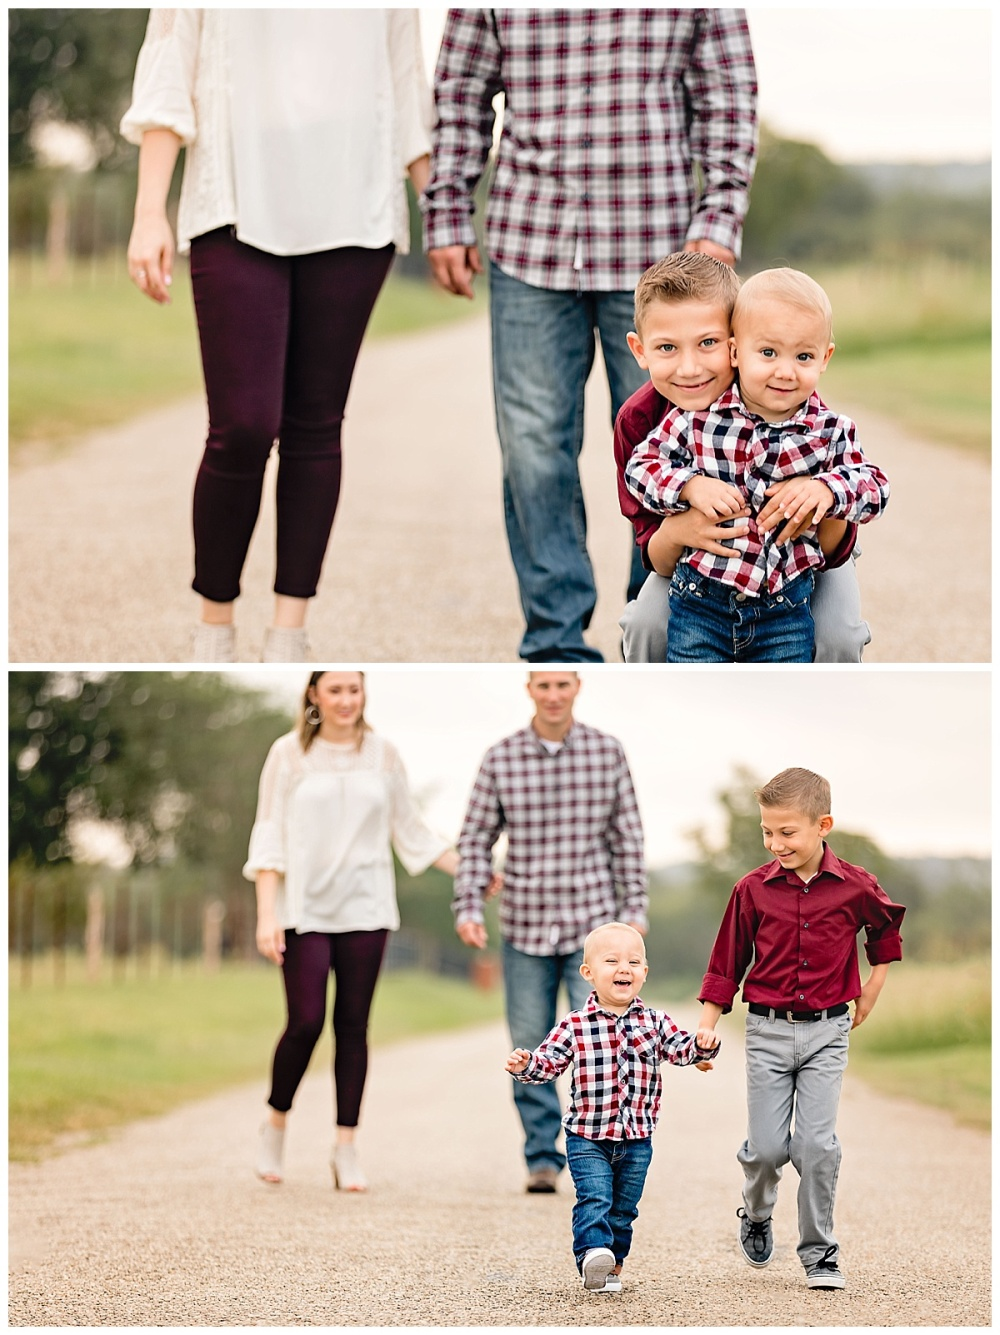 Family-Photographer-LaVernia-Texas-Fall-Carly-Barton-Photography_0002.jpg